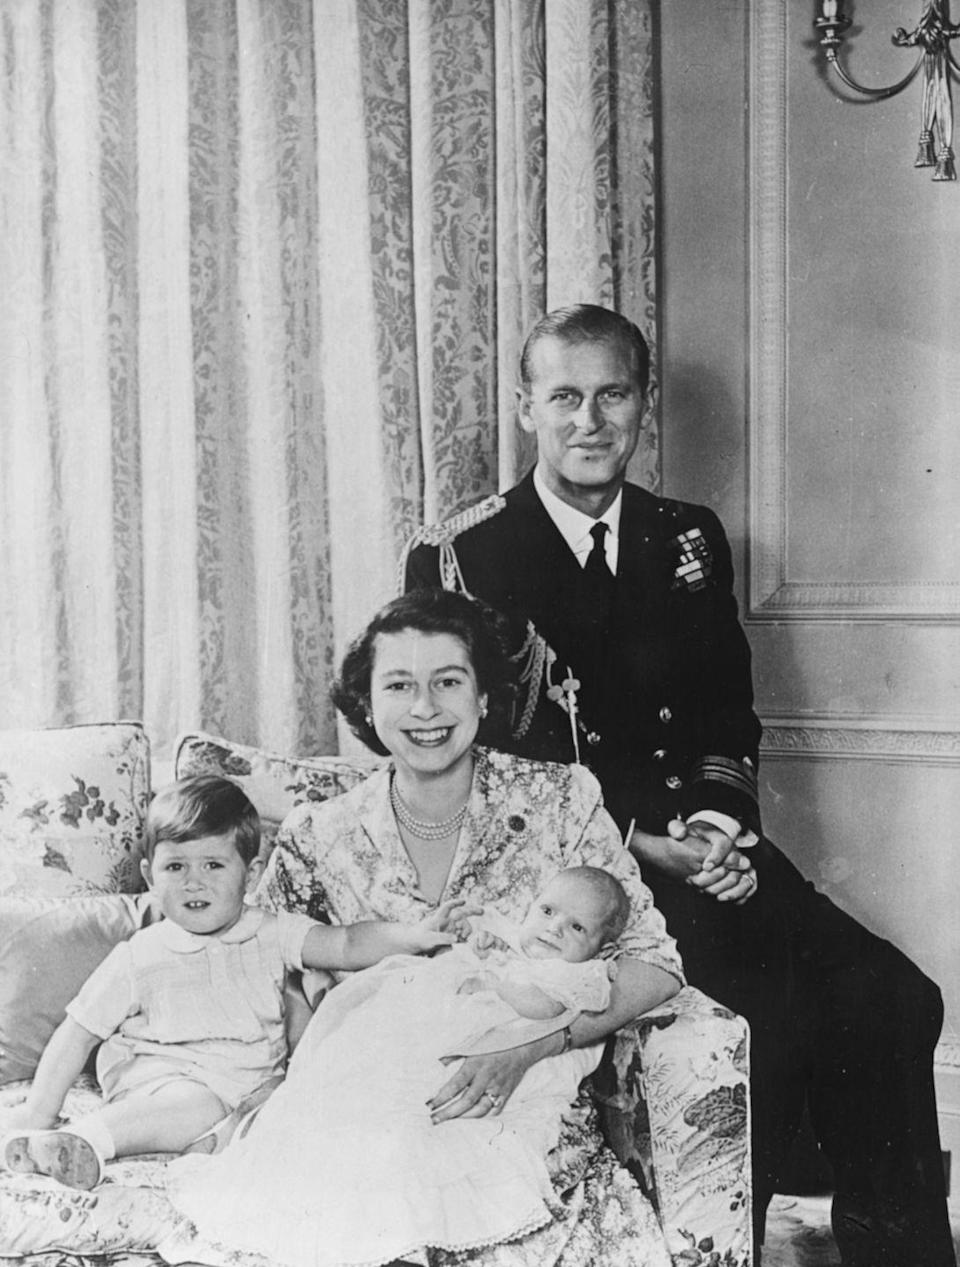 <p>Princess Anne, 2 months, poses for a photo with her brother, Prince Charles, 23 months, and their parents, Princess Elizabeth and Prince Philip, at Buckingham Palace. Elizabeth would become queen just two years later.</p>